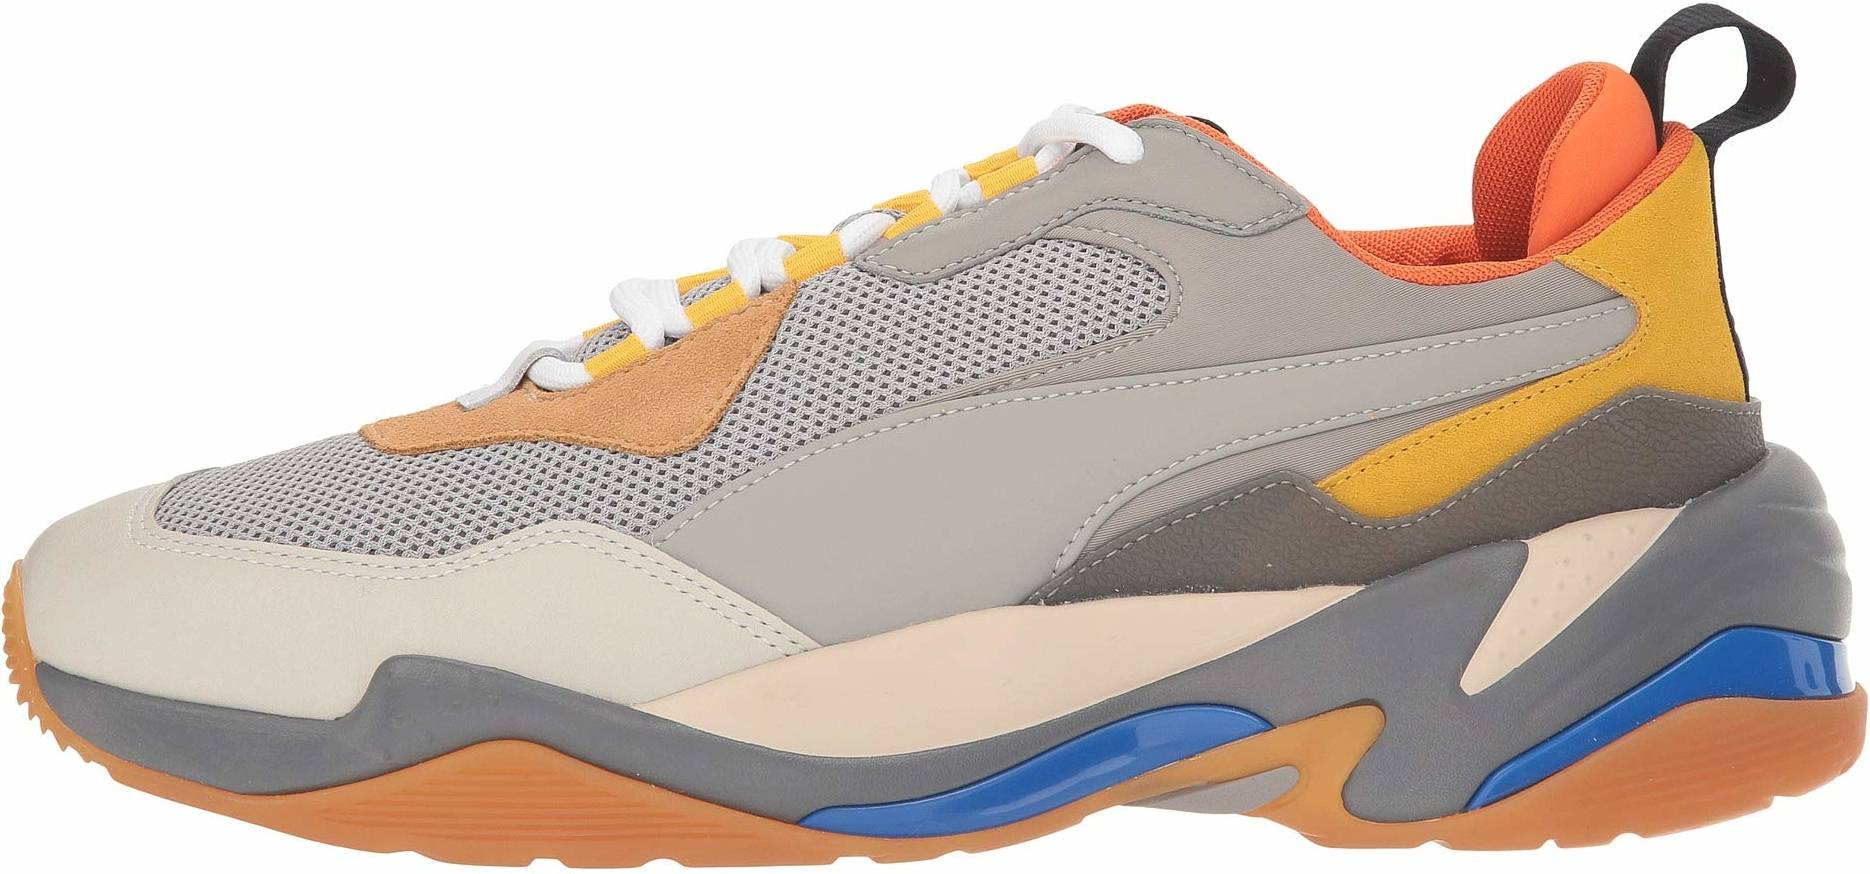 Puma Thunder Spectra sneakers in 5 colors (only $35) | RunRepeat